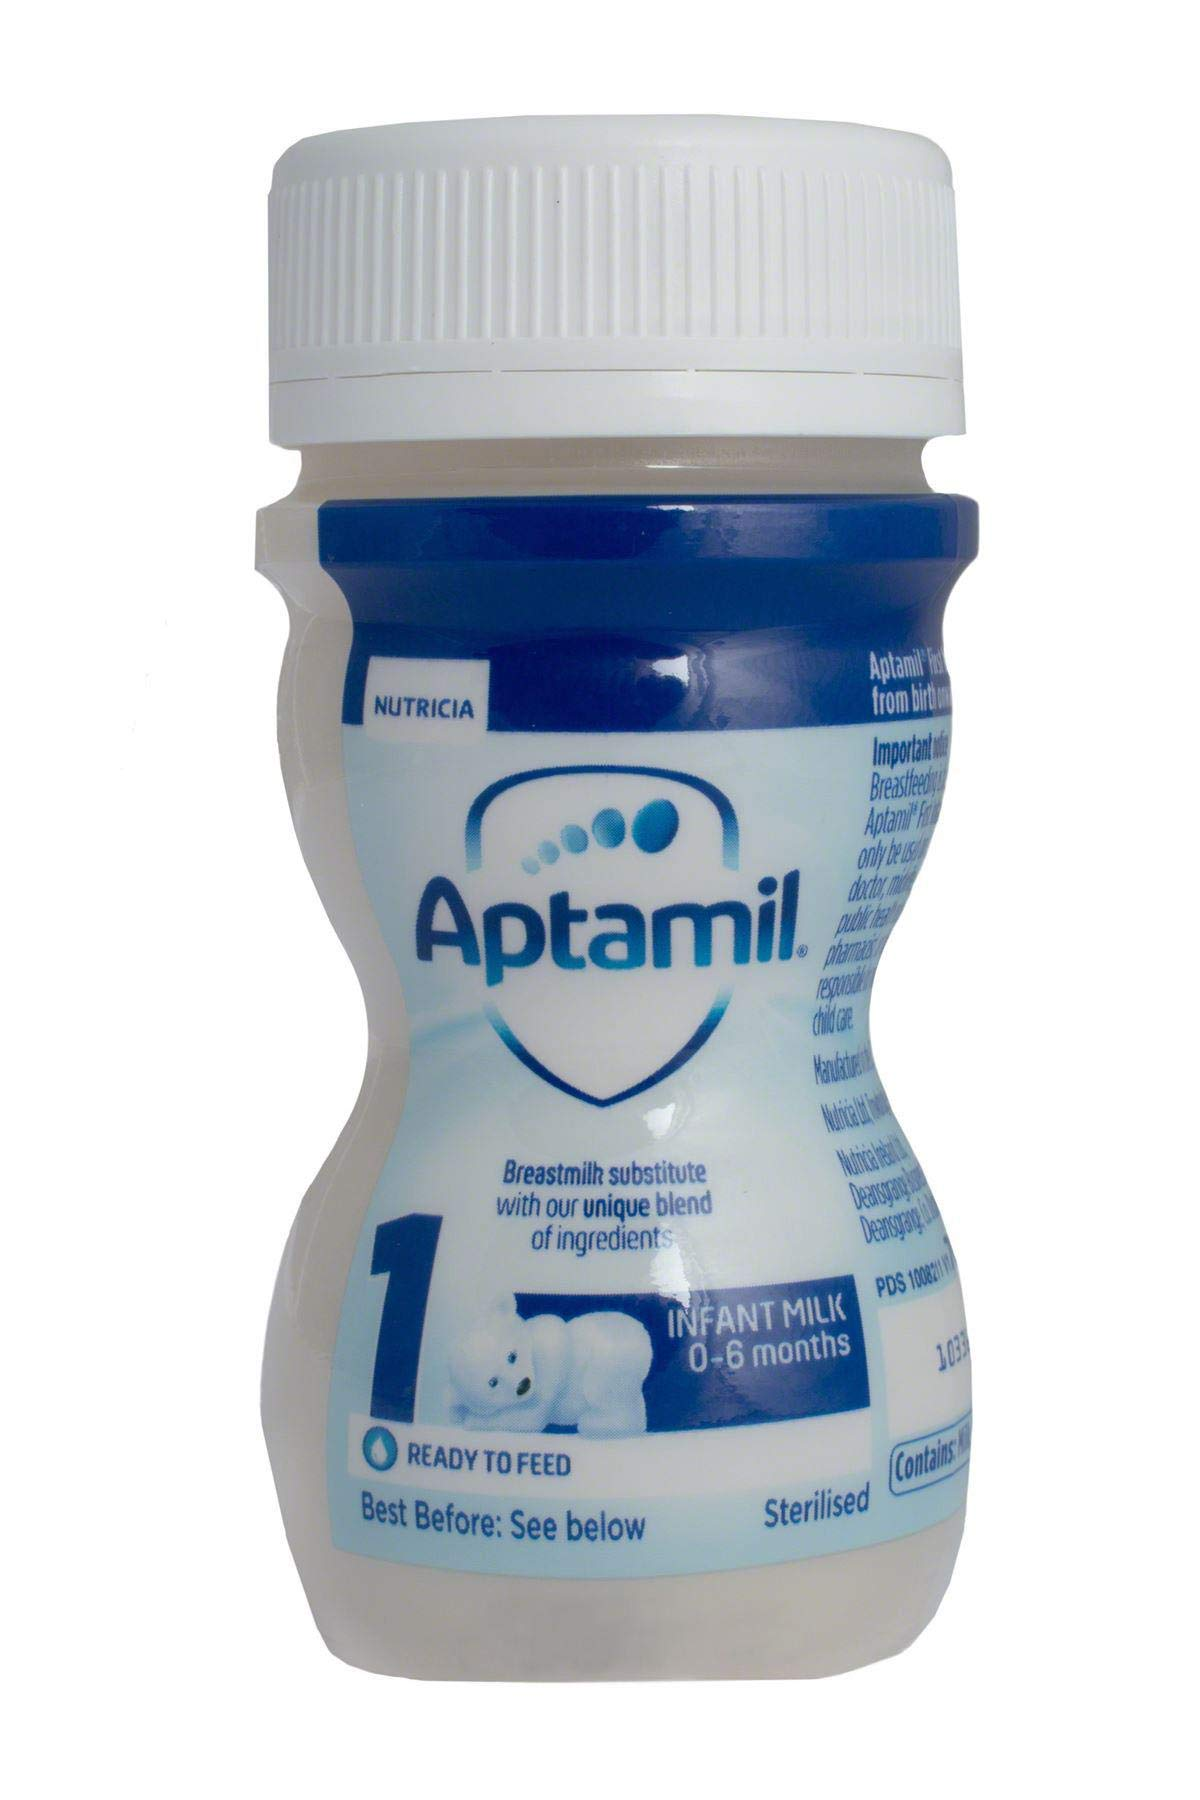 Aptamil First Infant Milk - Ready to Feed, 70ml, Box of 24 Bottles